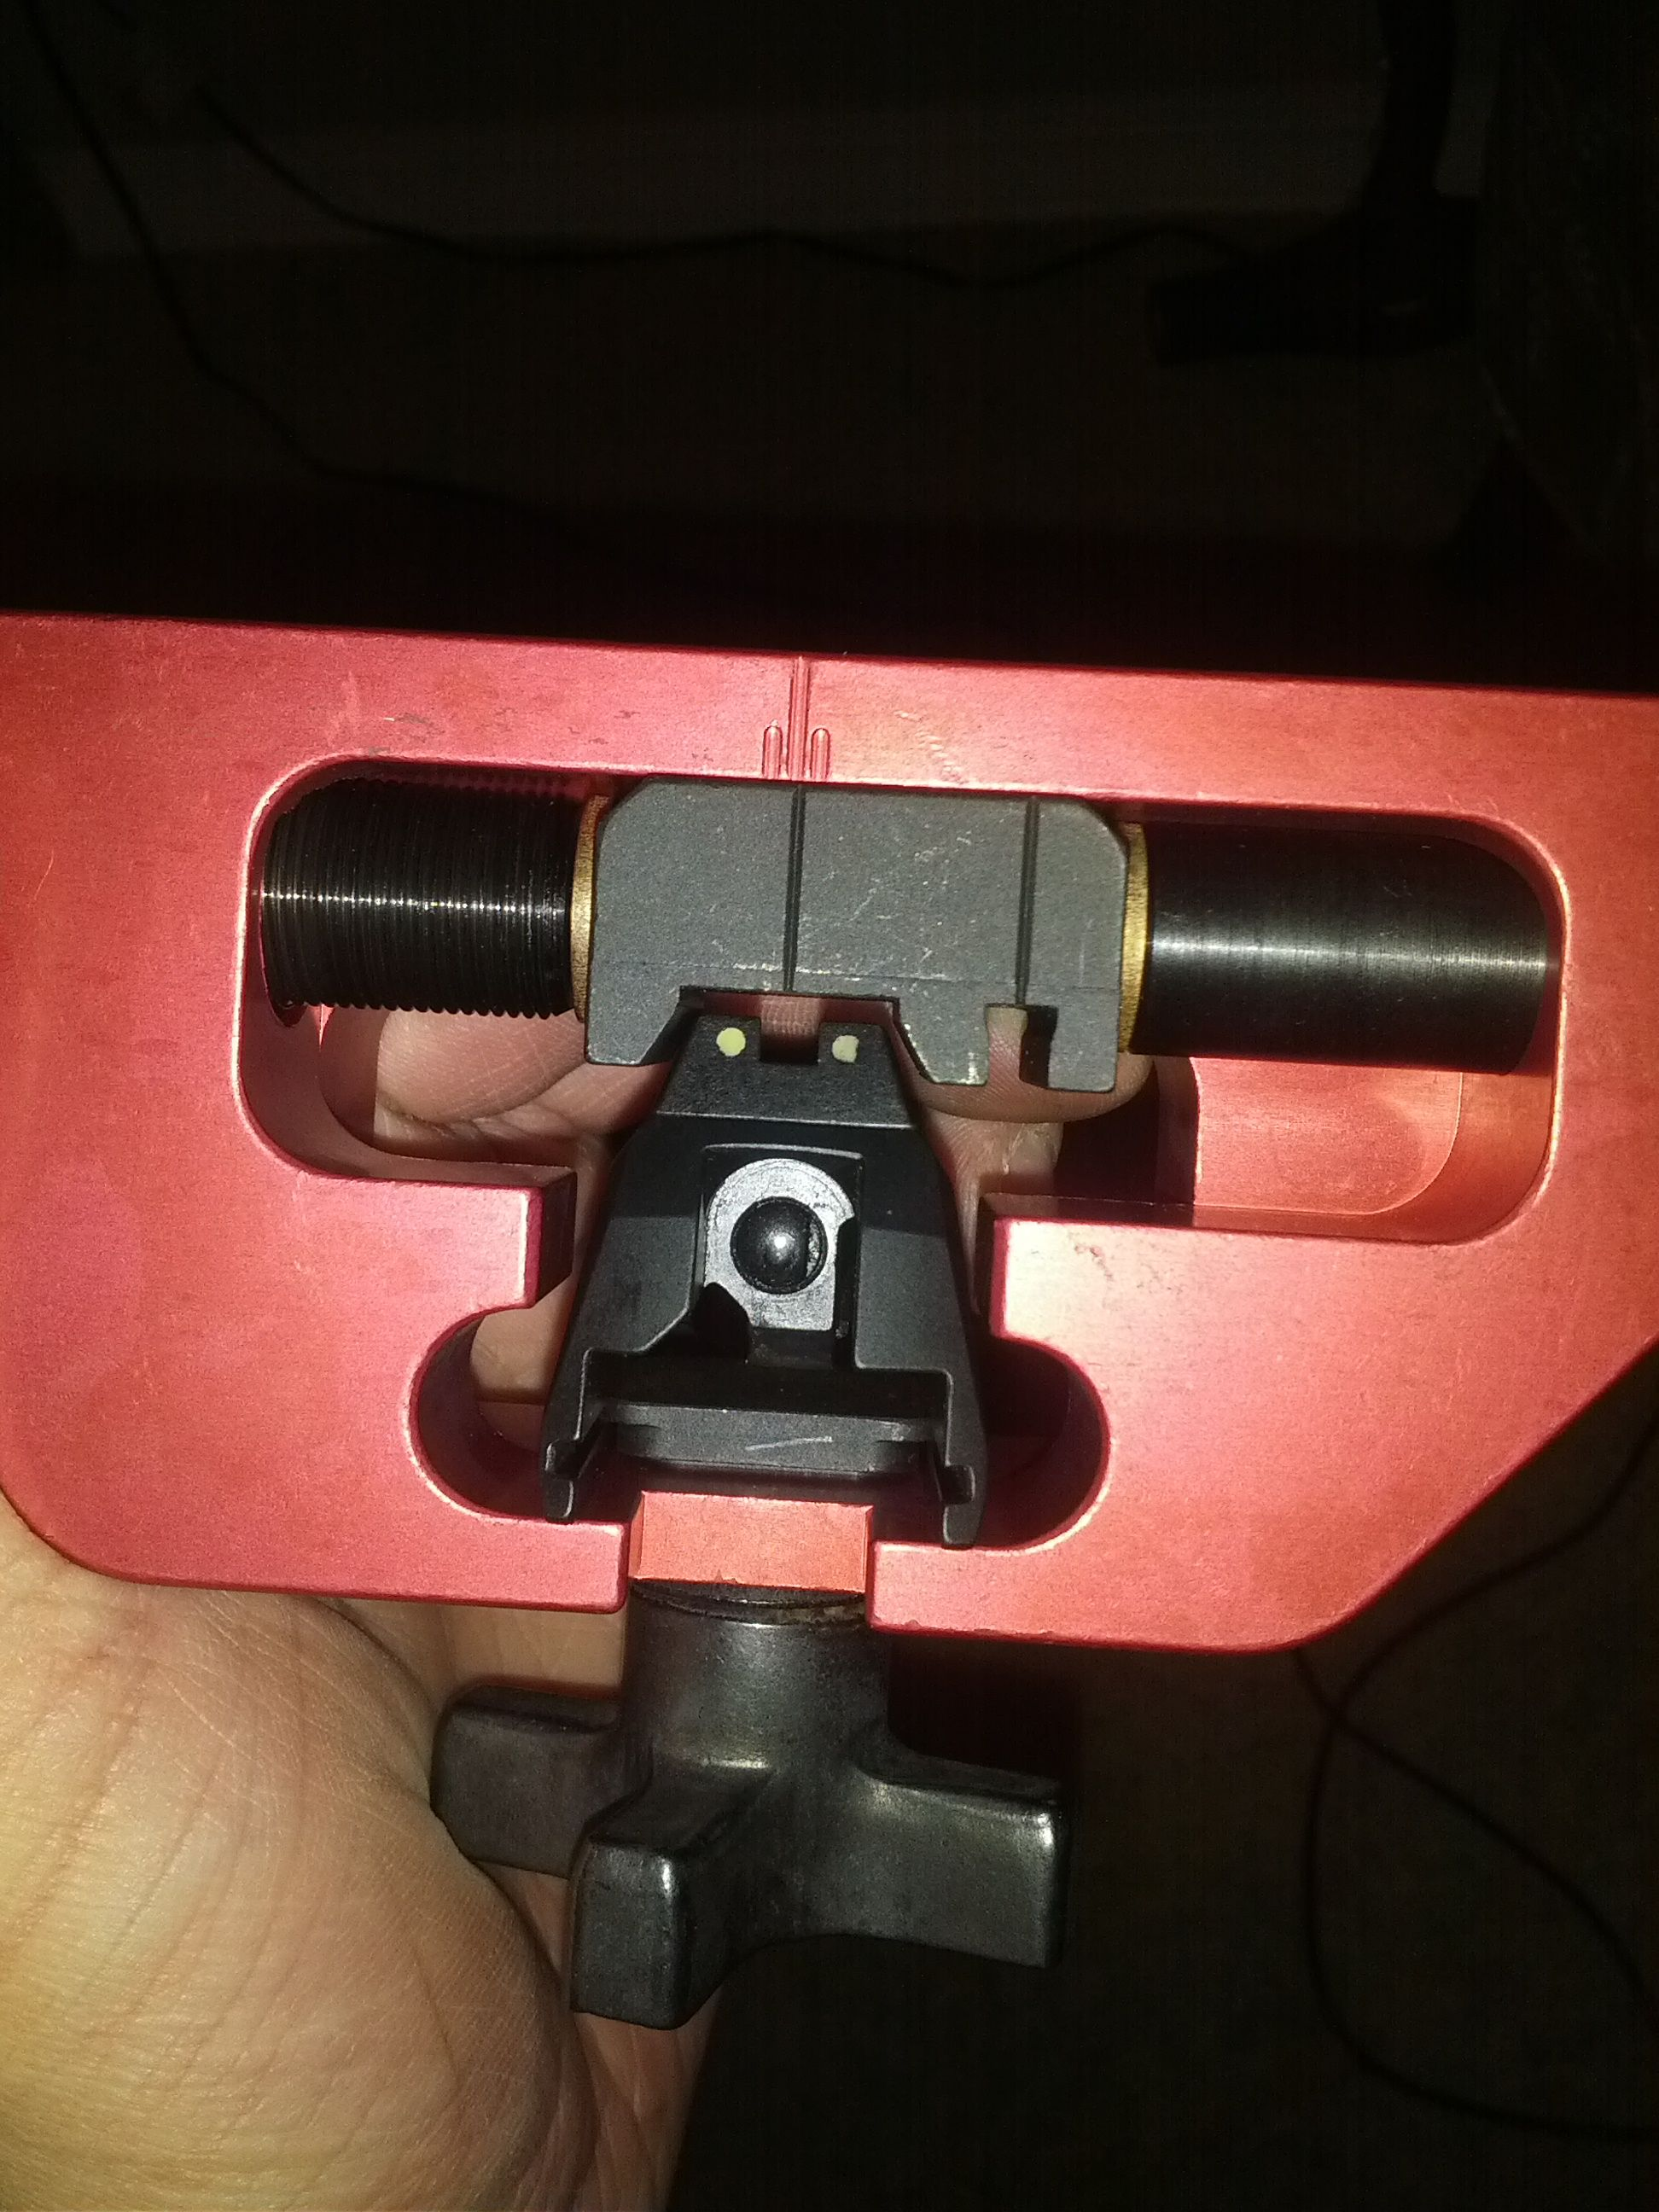 Inastalling Trijicon HD sights with MGW sight pusher  Is this